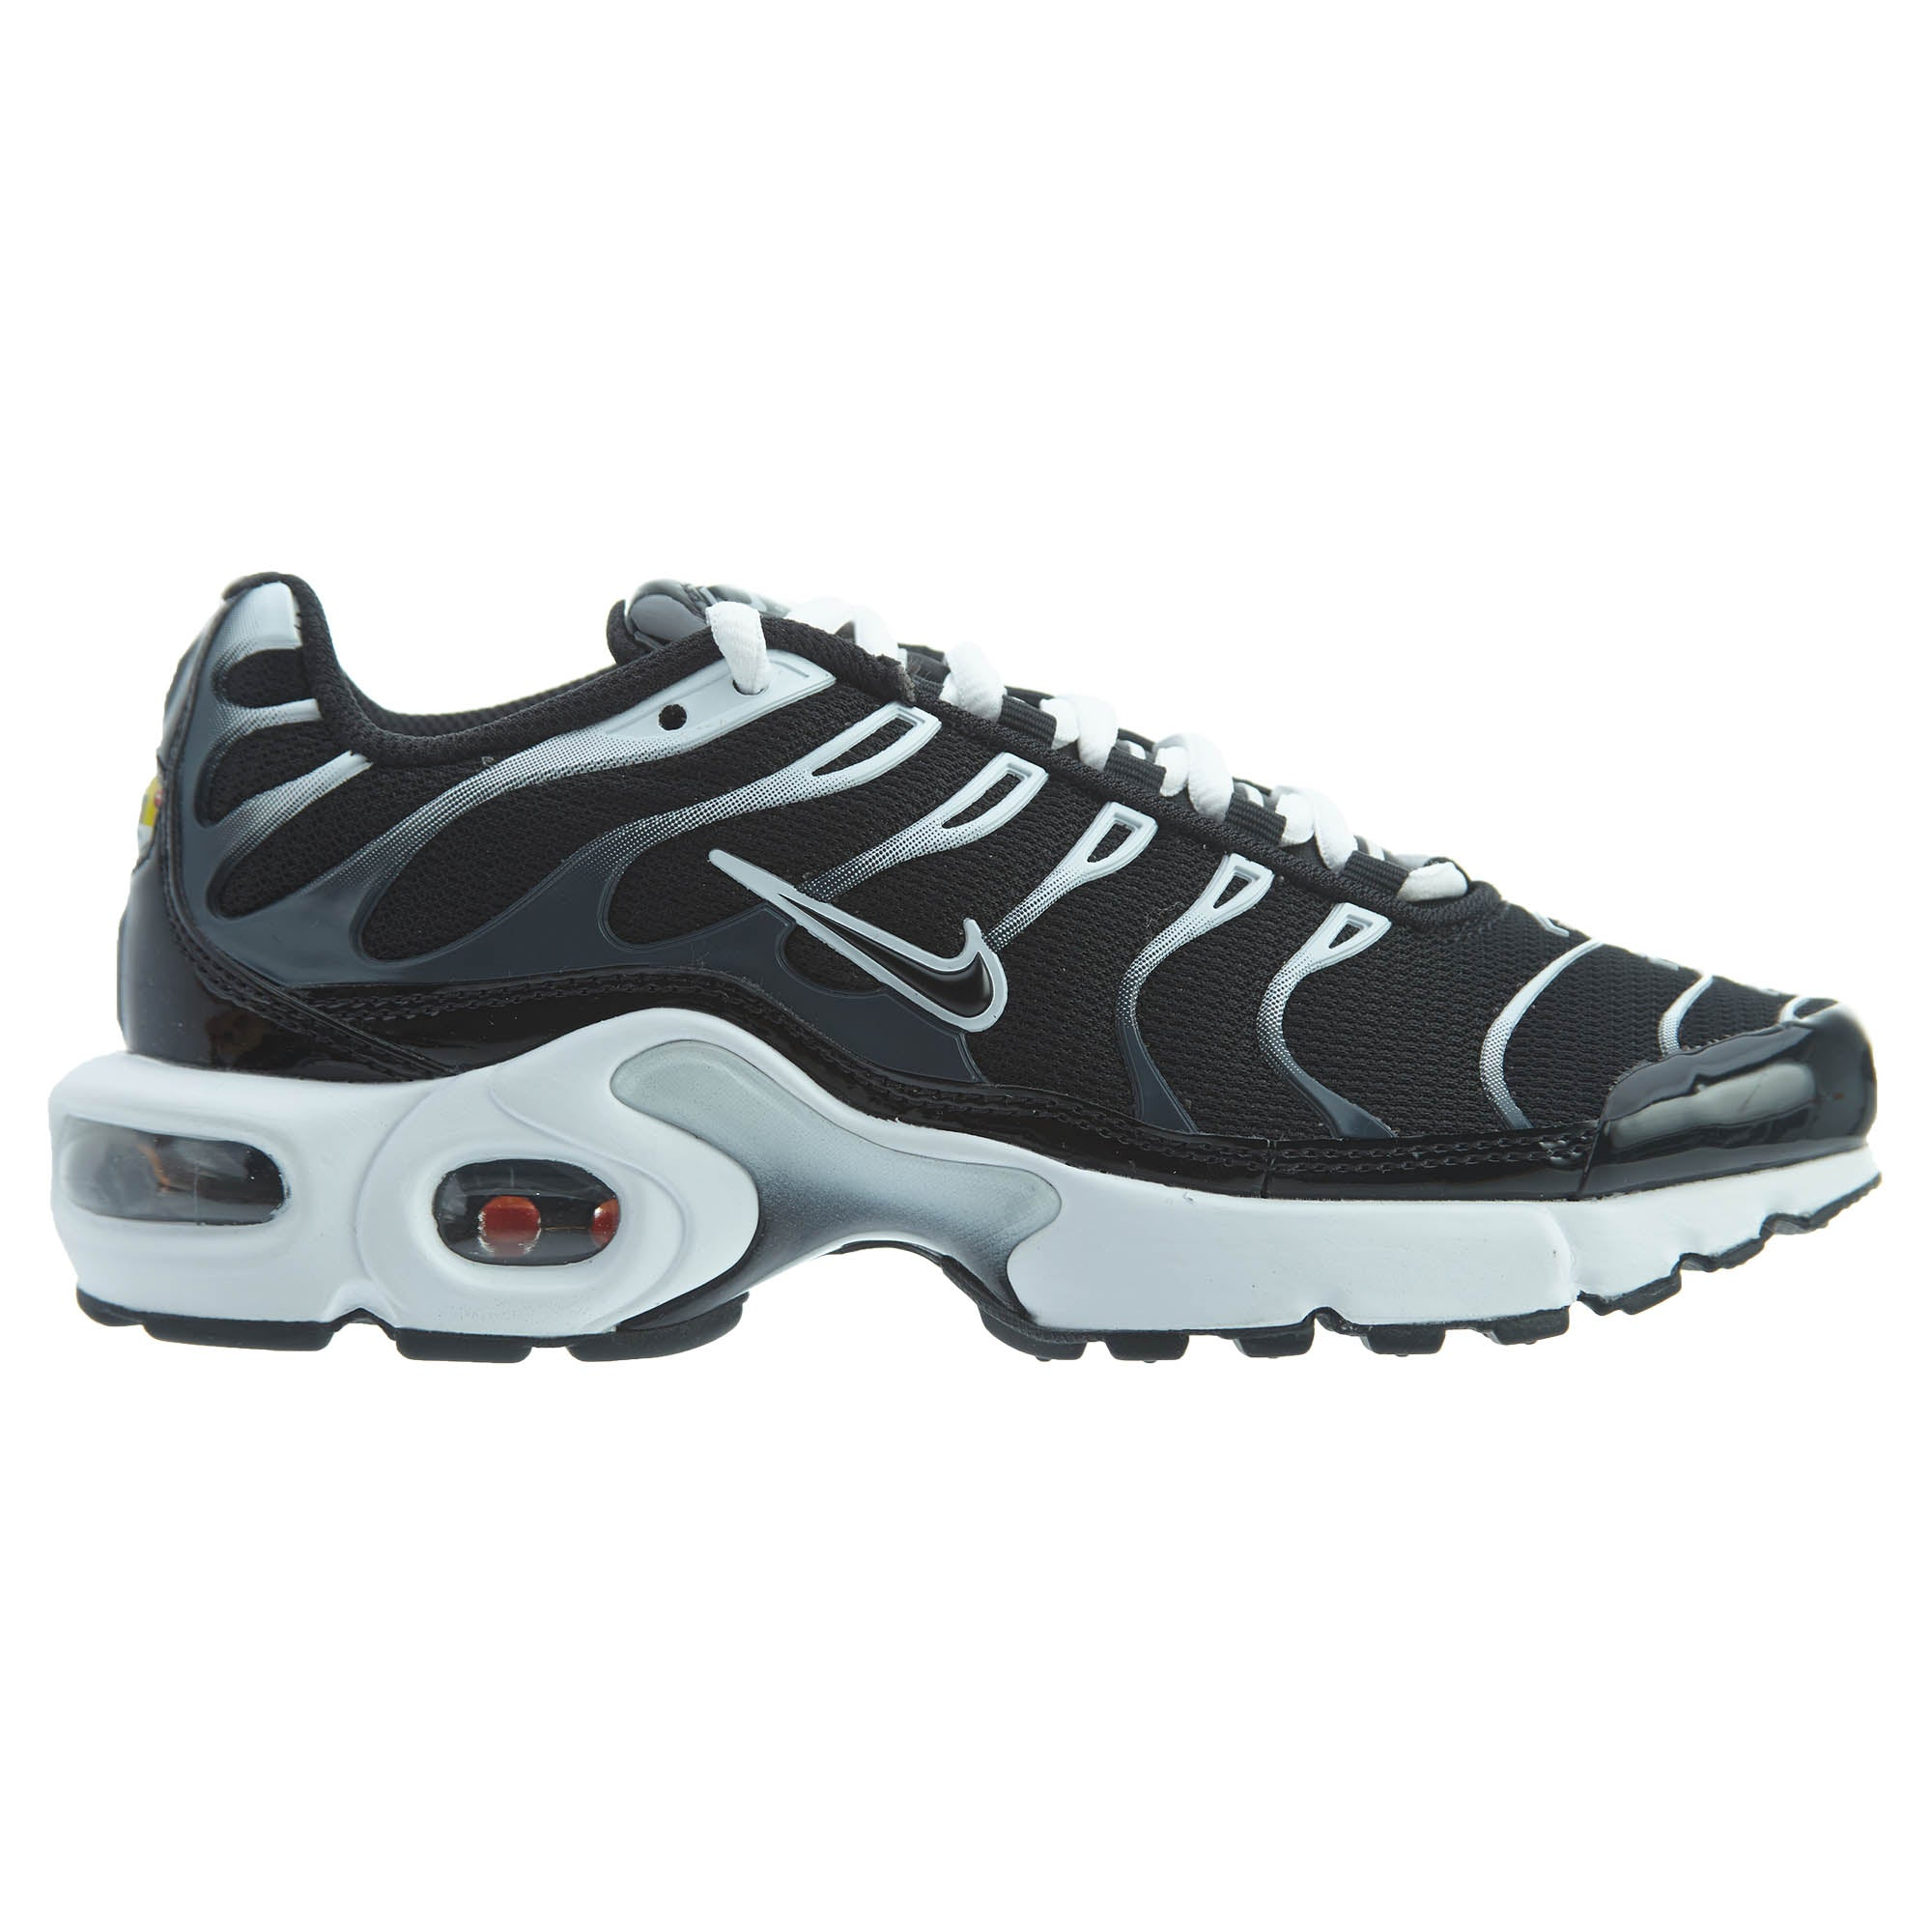 2574d8526f Nike Air Max Plus Big Kids Style : Ar1852-006. NIKE / Athletic Shoes &  Sneakers